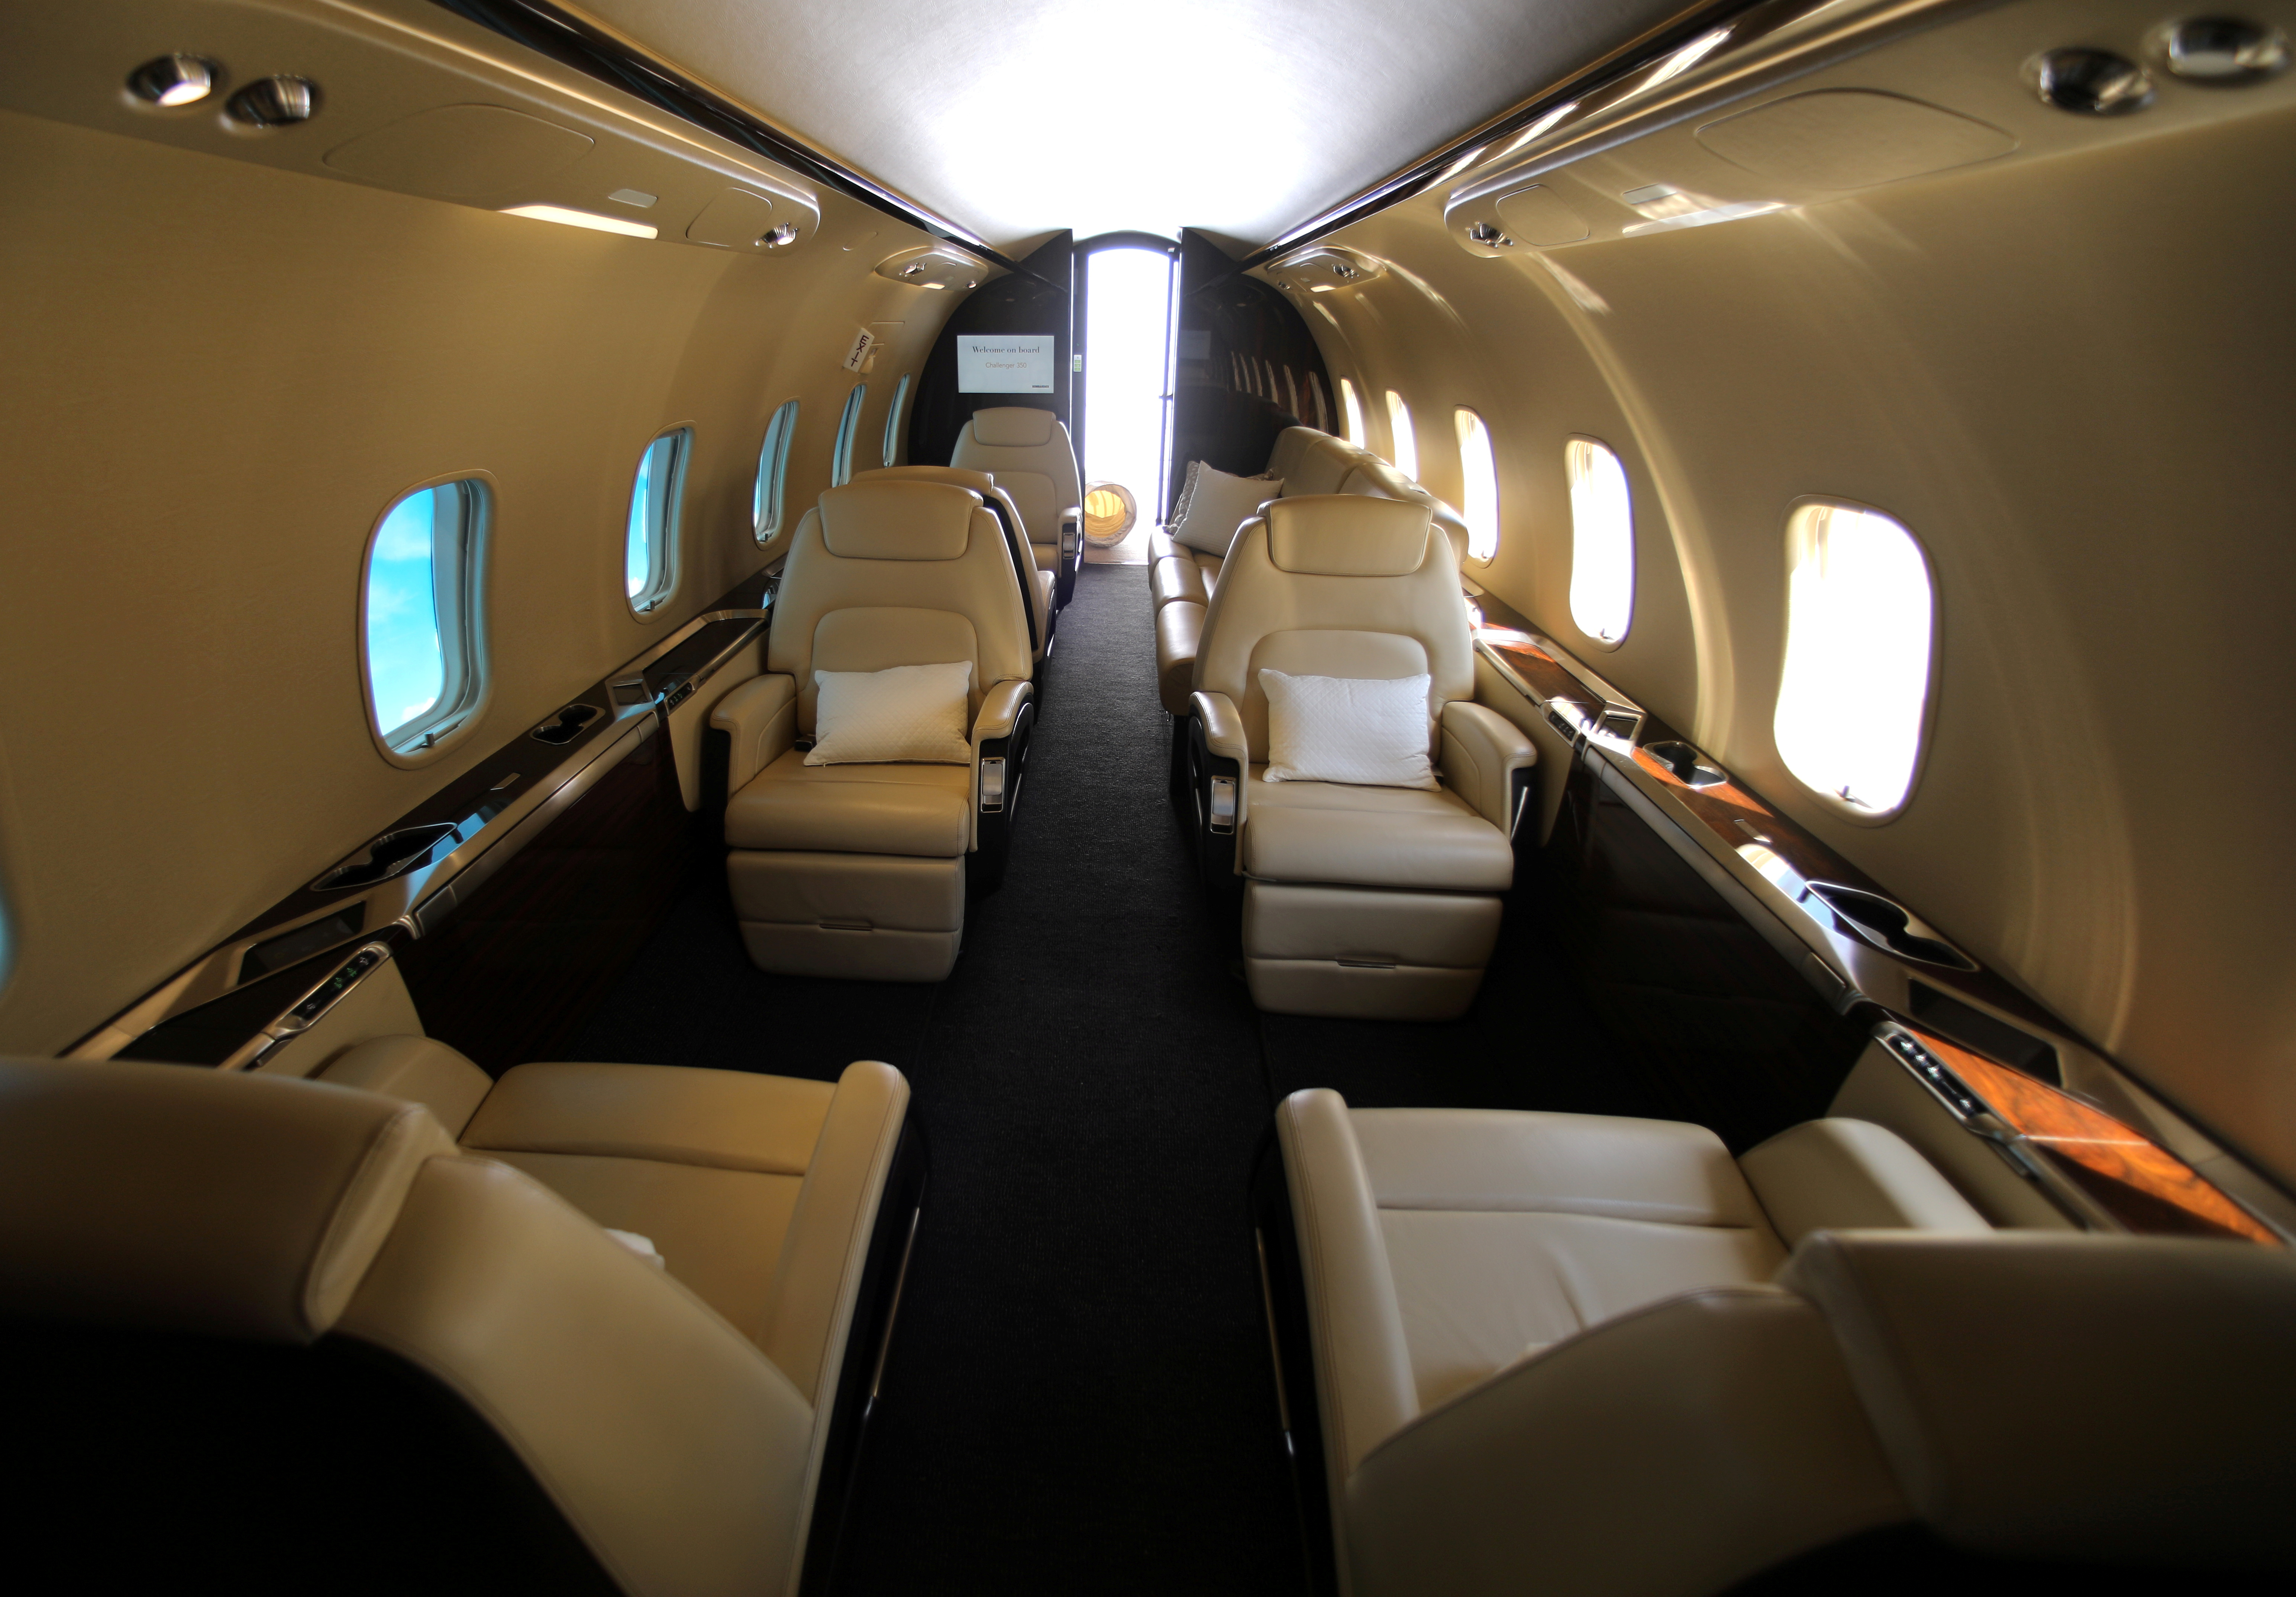 The inside of a fuselage of a Bombardier 350 Challenger jet is seen on display for attendees to view at the Milken Institute Global Conference in Beverly Hills, California, U.S., May 2, 2017. REUTERS/Mike Blake